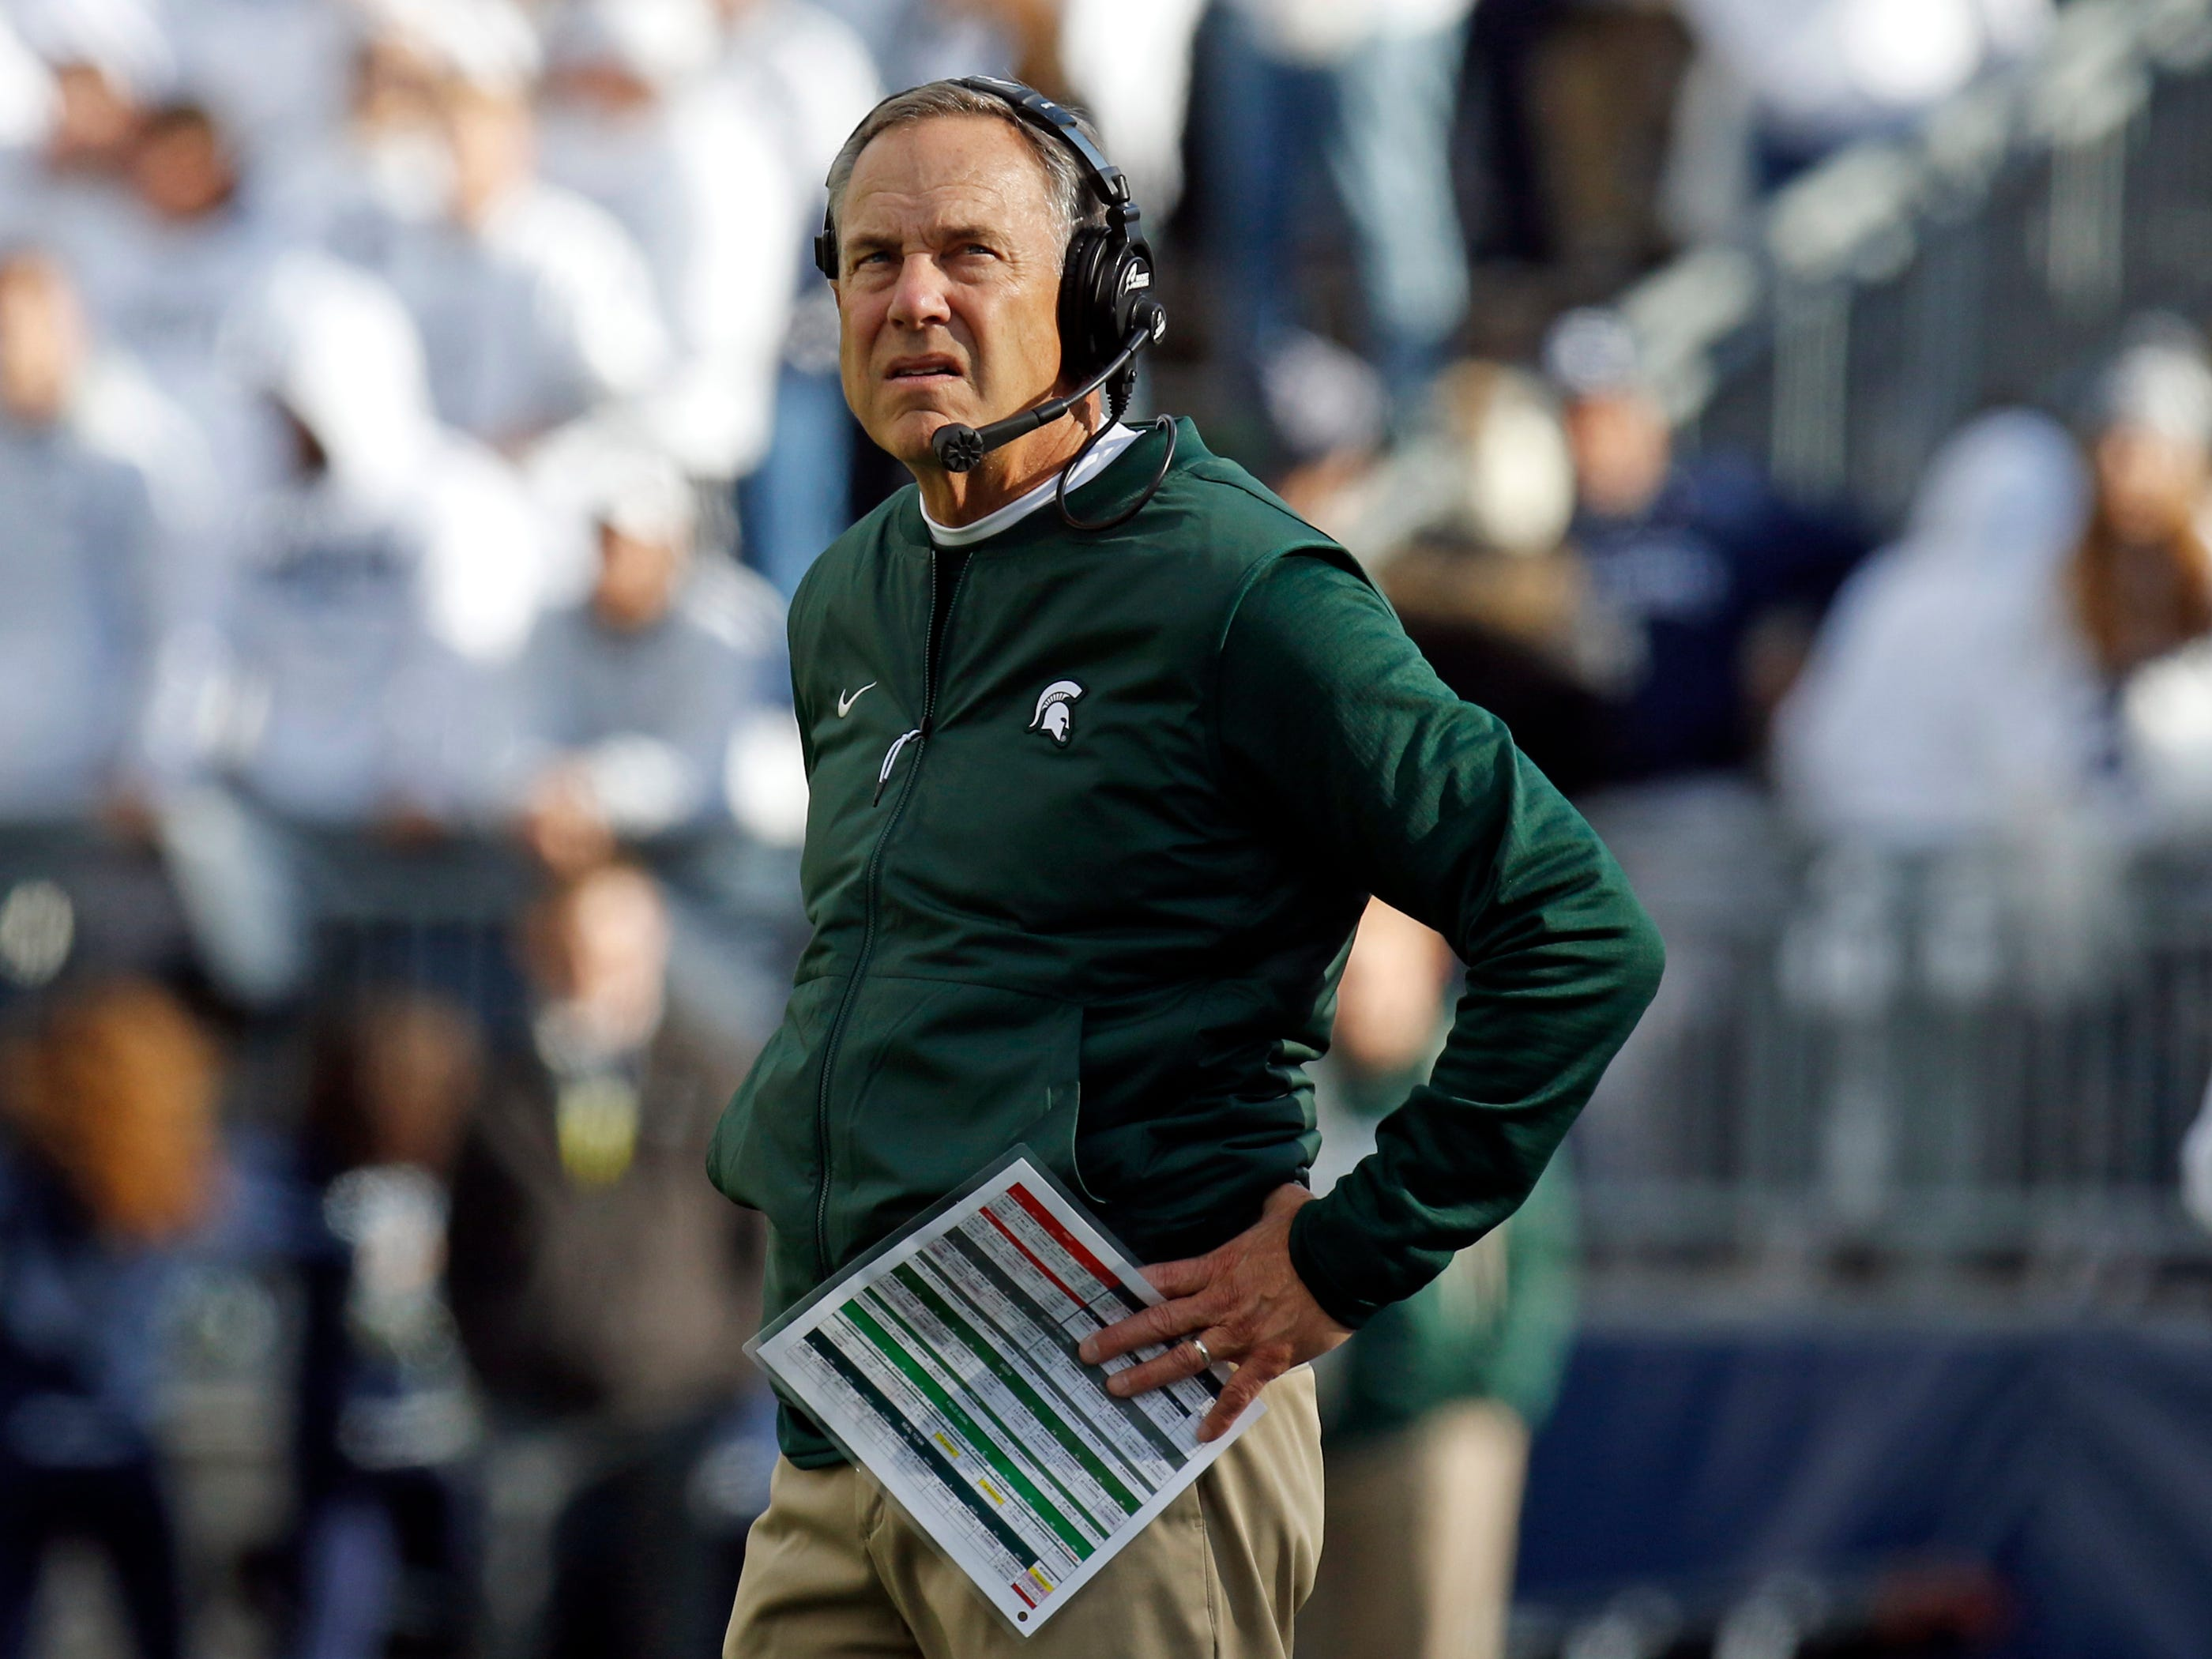 Head coach Mark Dantonio of the Michigan State Spartans looks on against the Penn State Nittany Lions on October 13, 2018 at Beaver Stadium in State College, Pennsylvania.